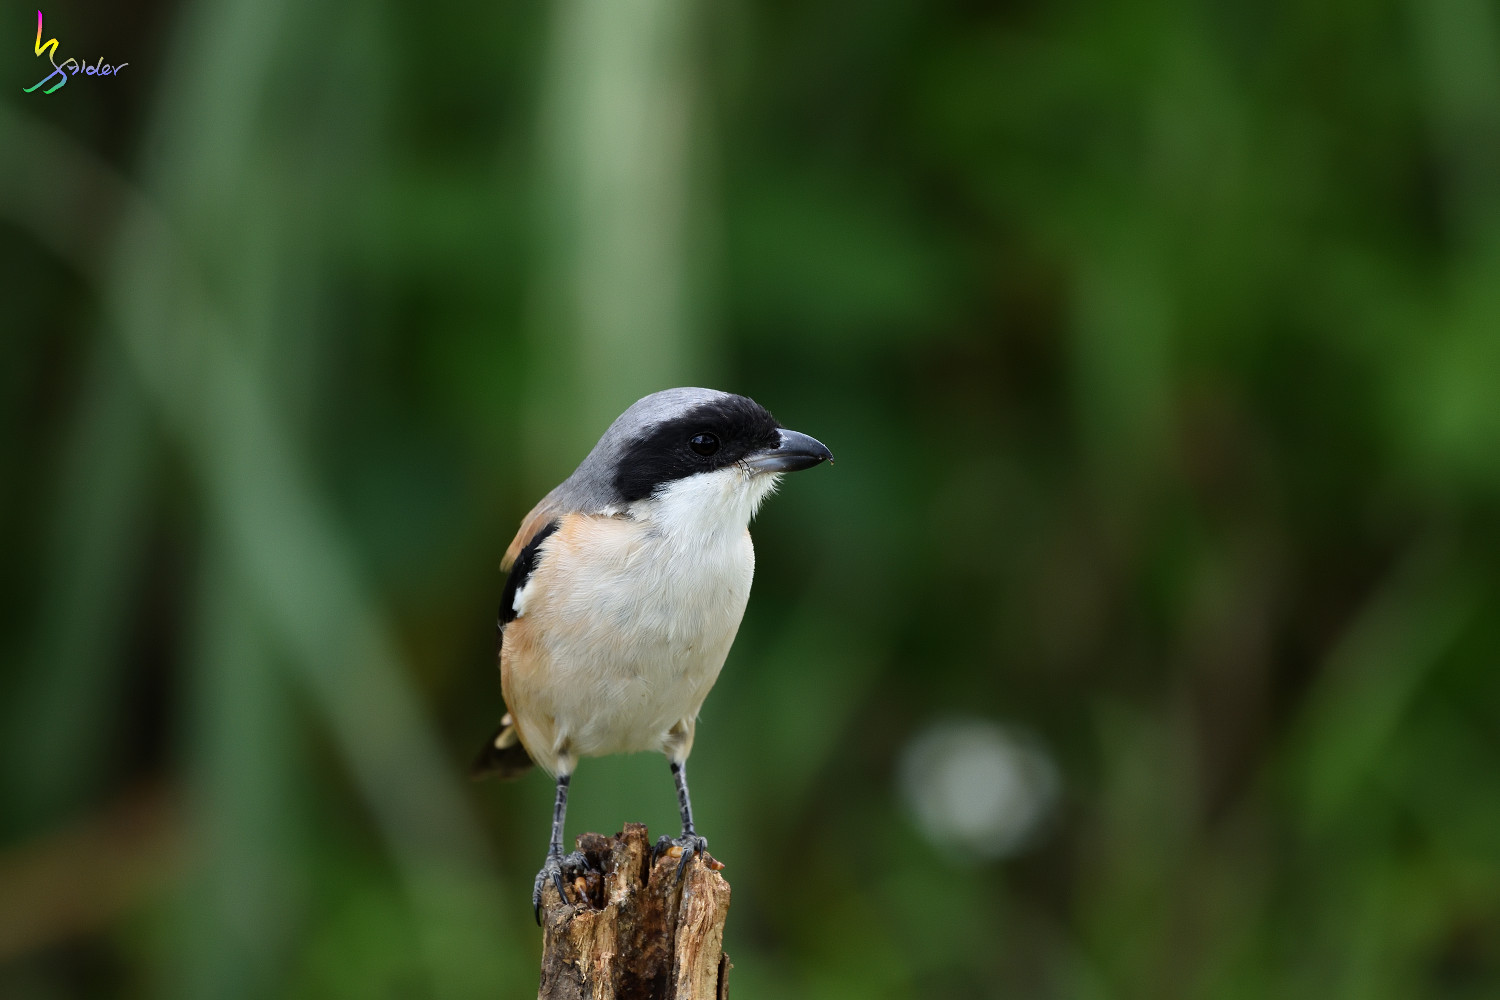 Long-tailed_Shrike_0733